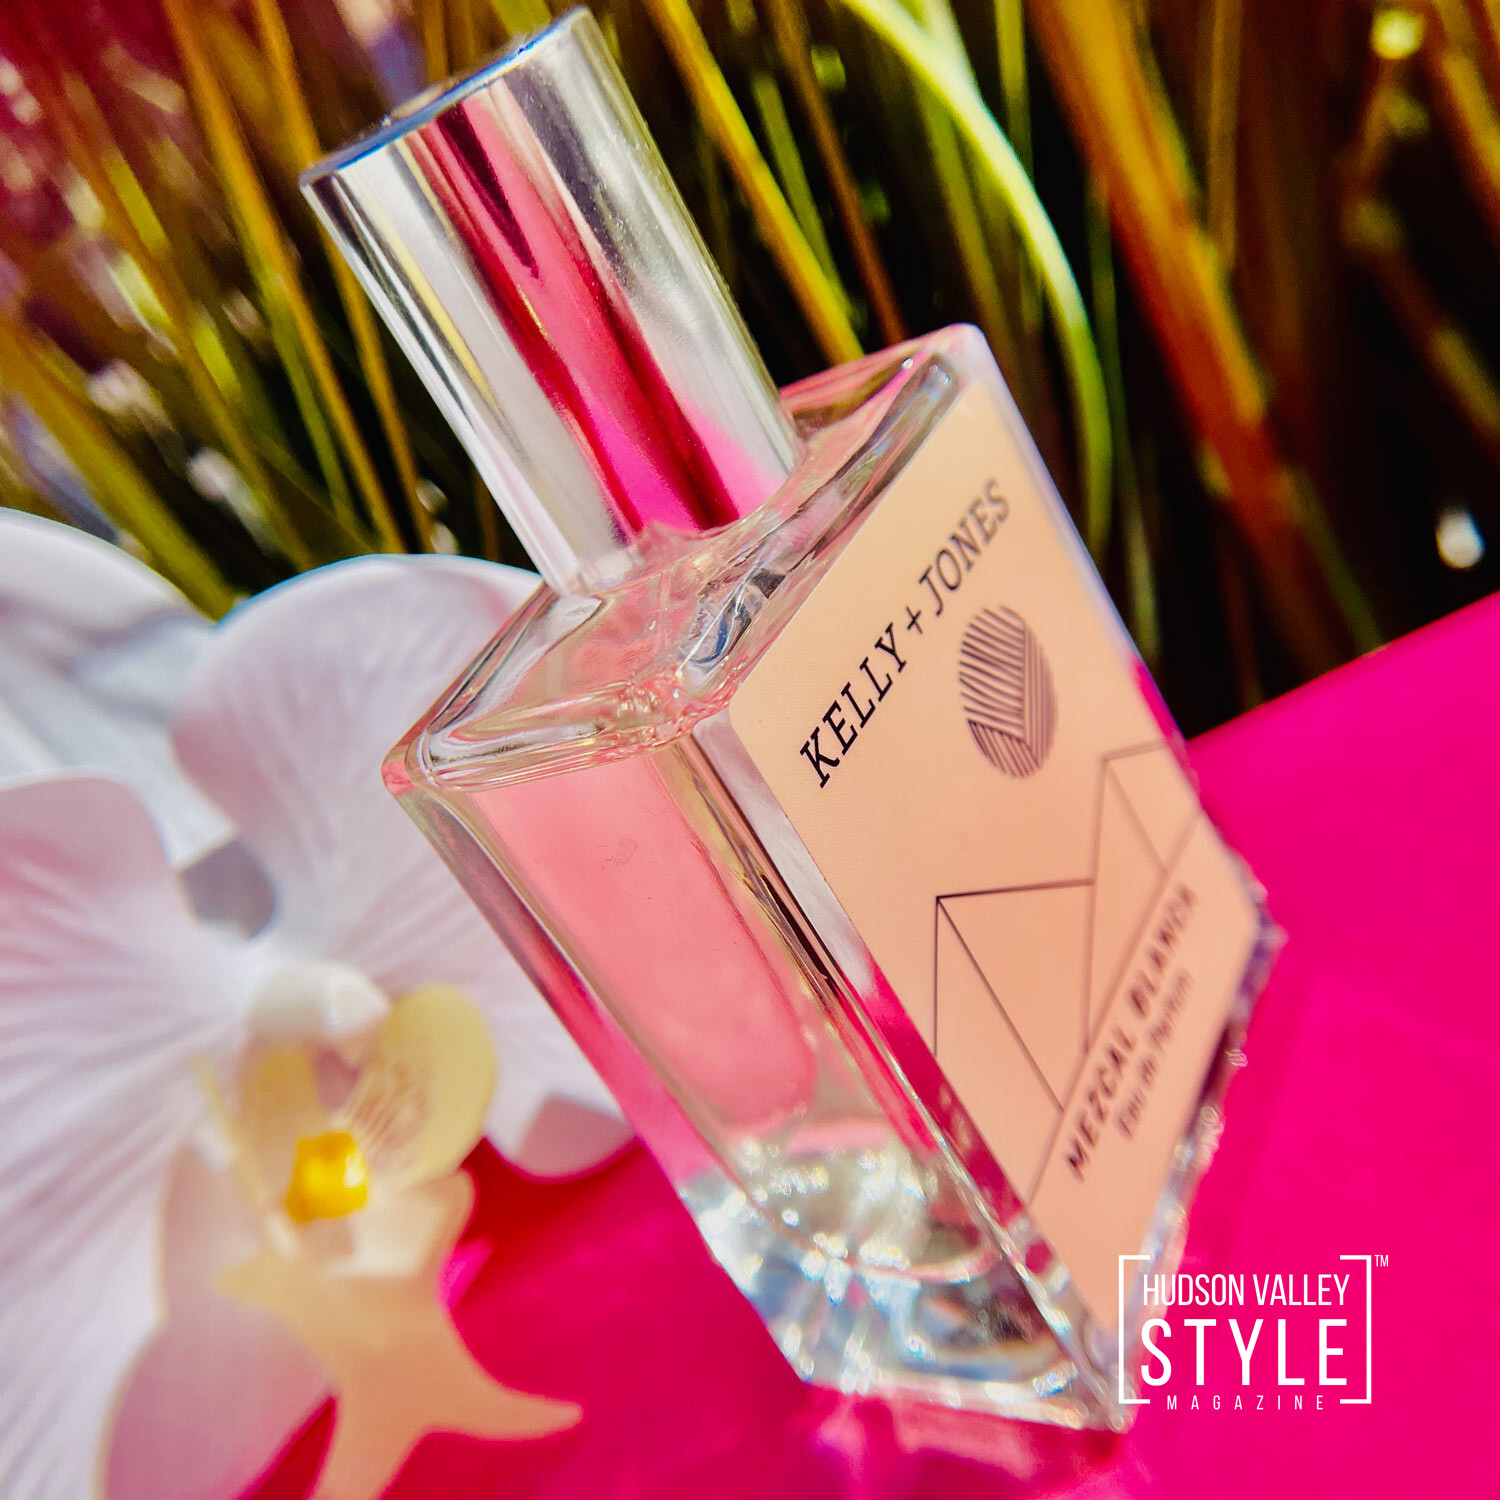 4 Tips on Choosing the Right Spring Perfume for You – by Designer Maxwell Alexander, Editor-in-Chief, Hudson Valley Style Magazine